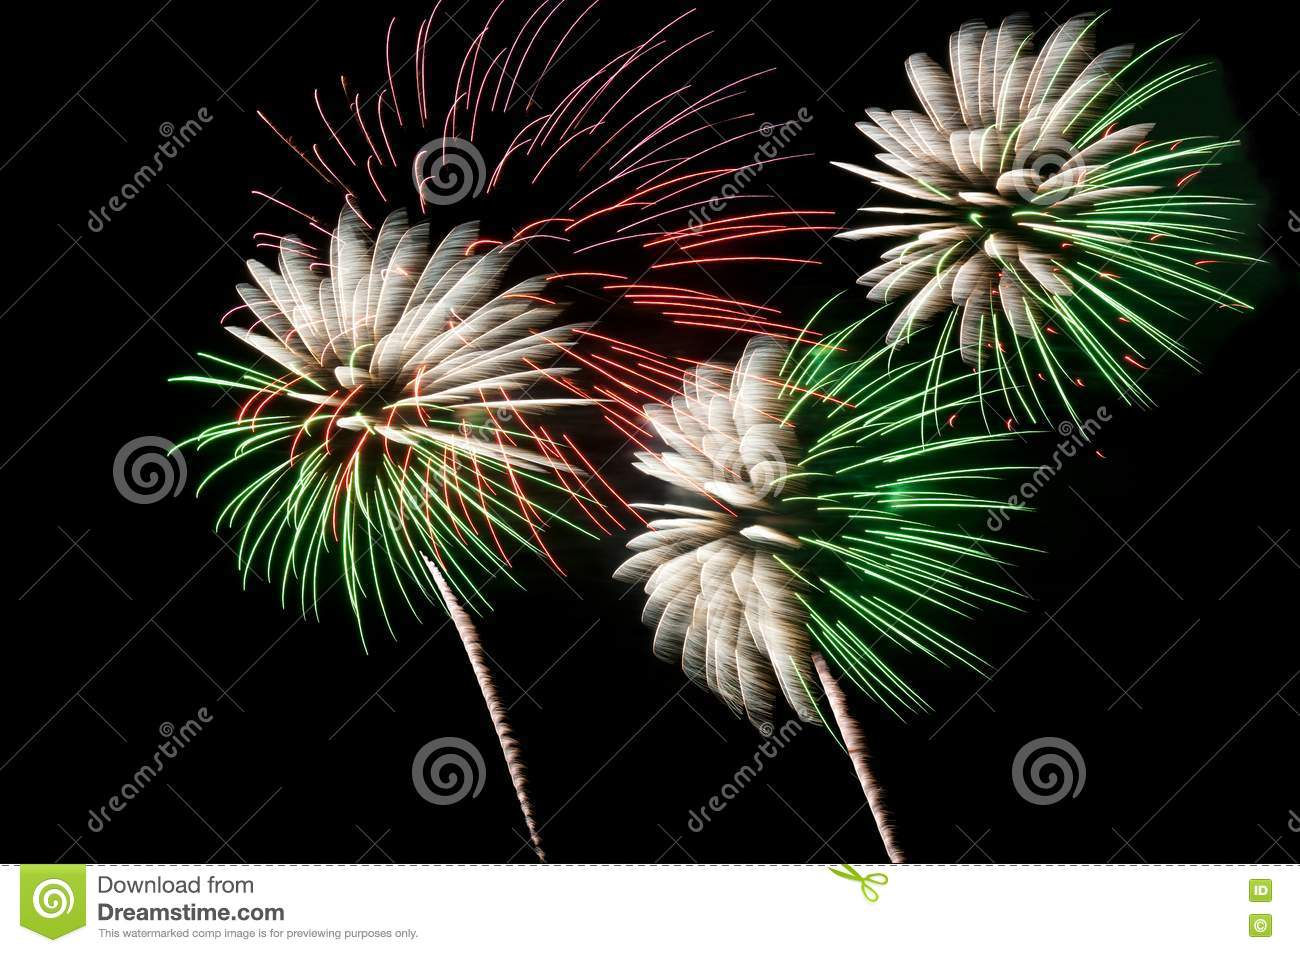 Green and white fireworks